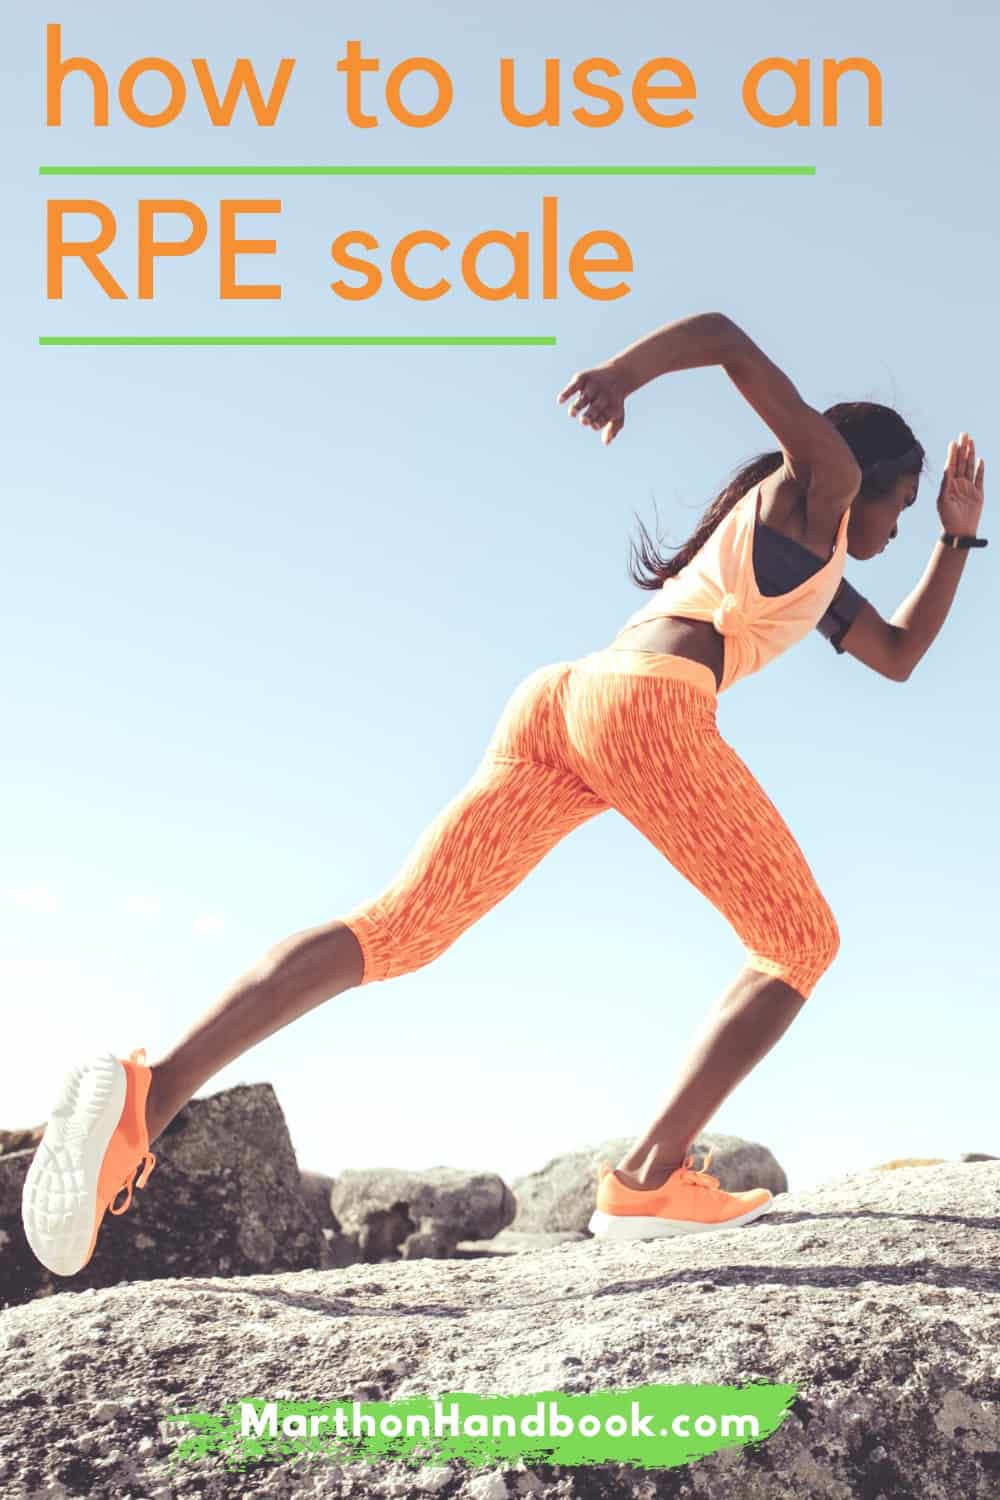 Have you heard of the Rate of Perceived Exertion (RPE) chart but not sure how it's used or whether it is useful for your running workouts?  We explain what RPE is and how to use it for creating workout routines.   MarathonHandbook.com #running #fitness